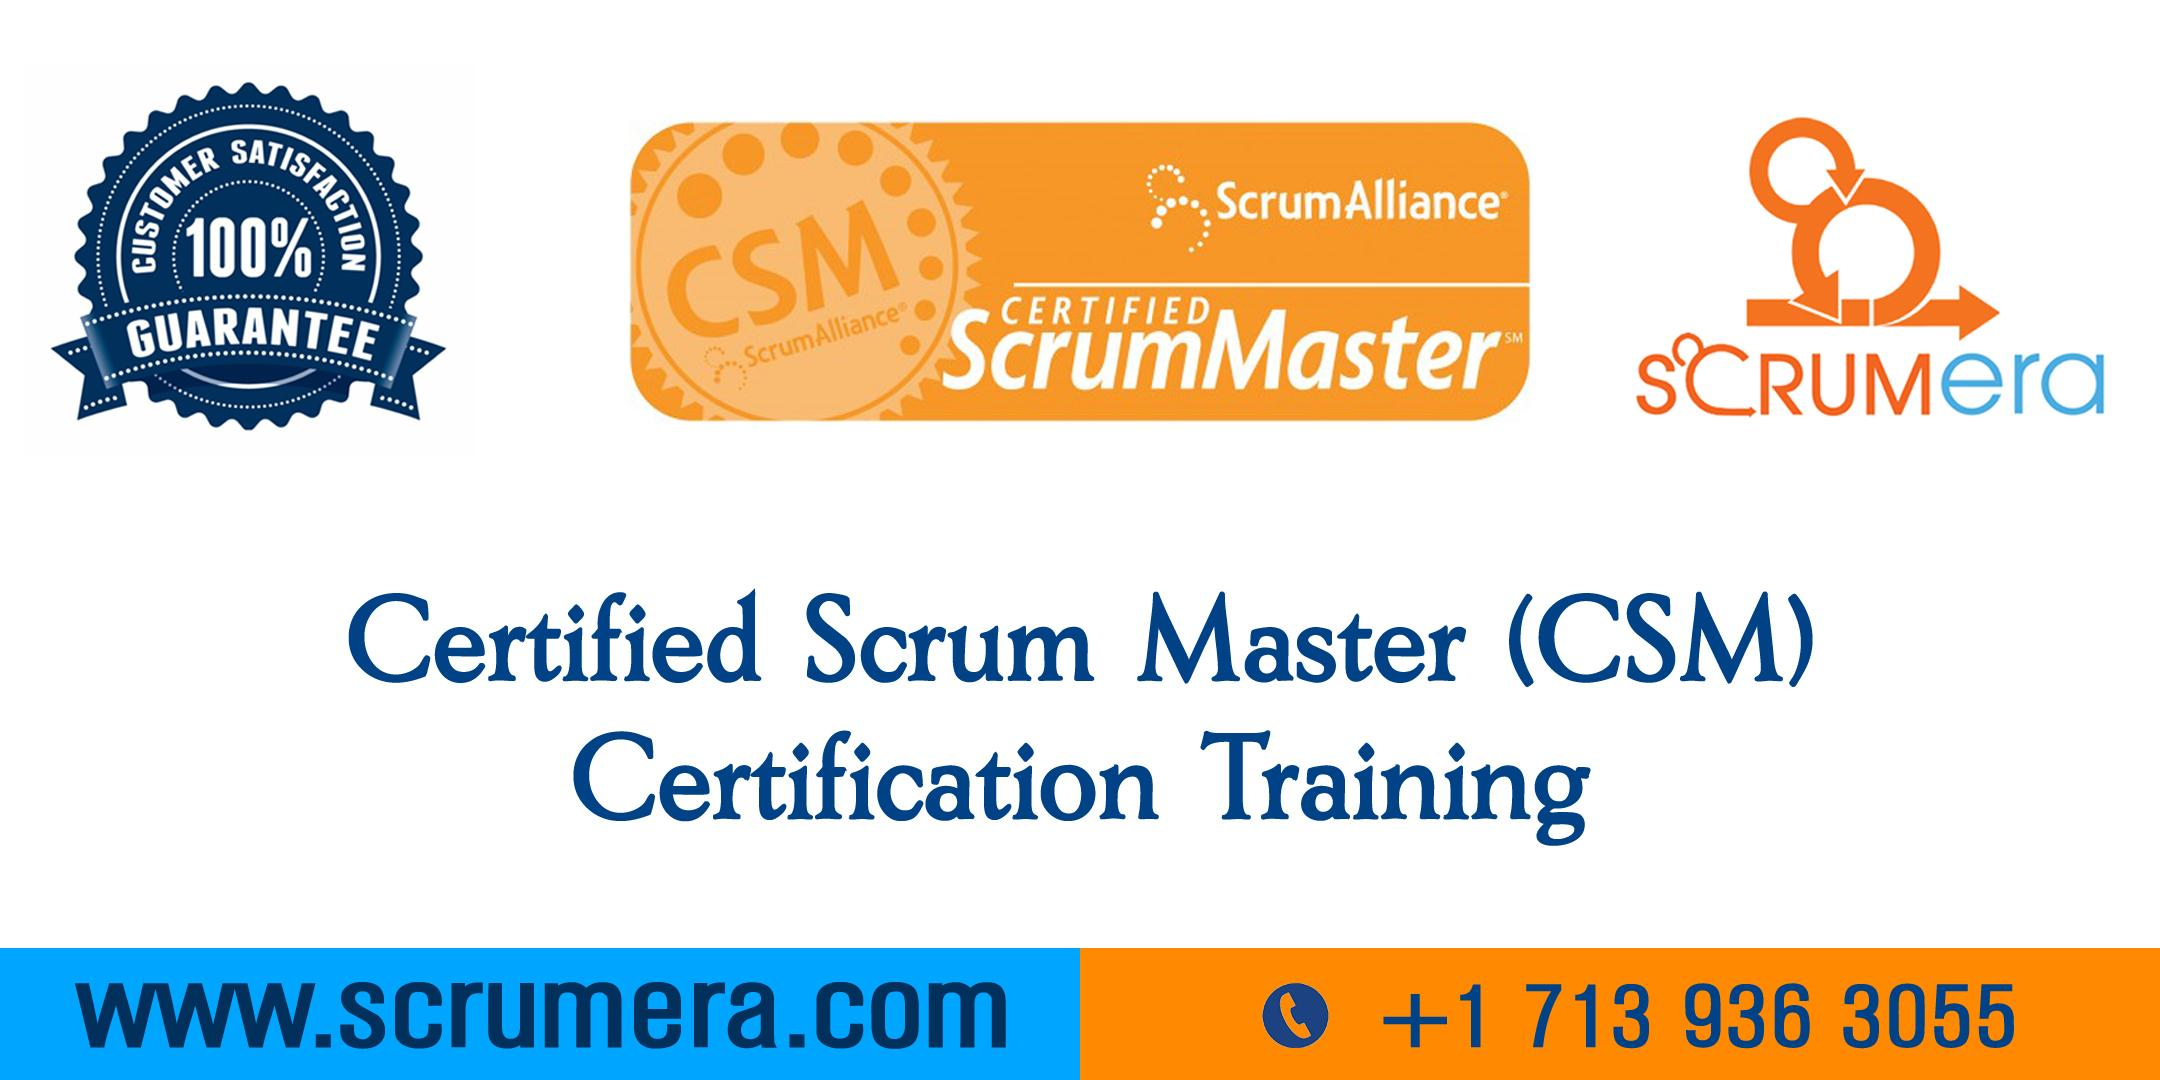 Scrum Master Certification | CSM Training | CSM Certification Workshop | Certified Scrum Master (CSM) Training in Austin, TX | ScrumERA